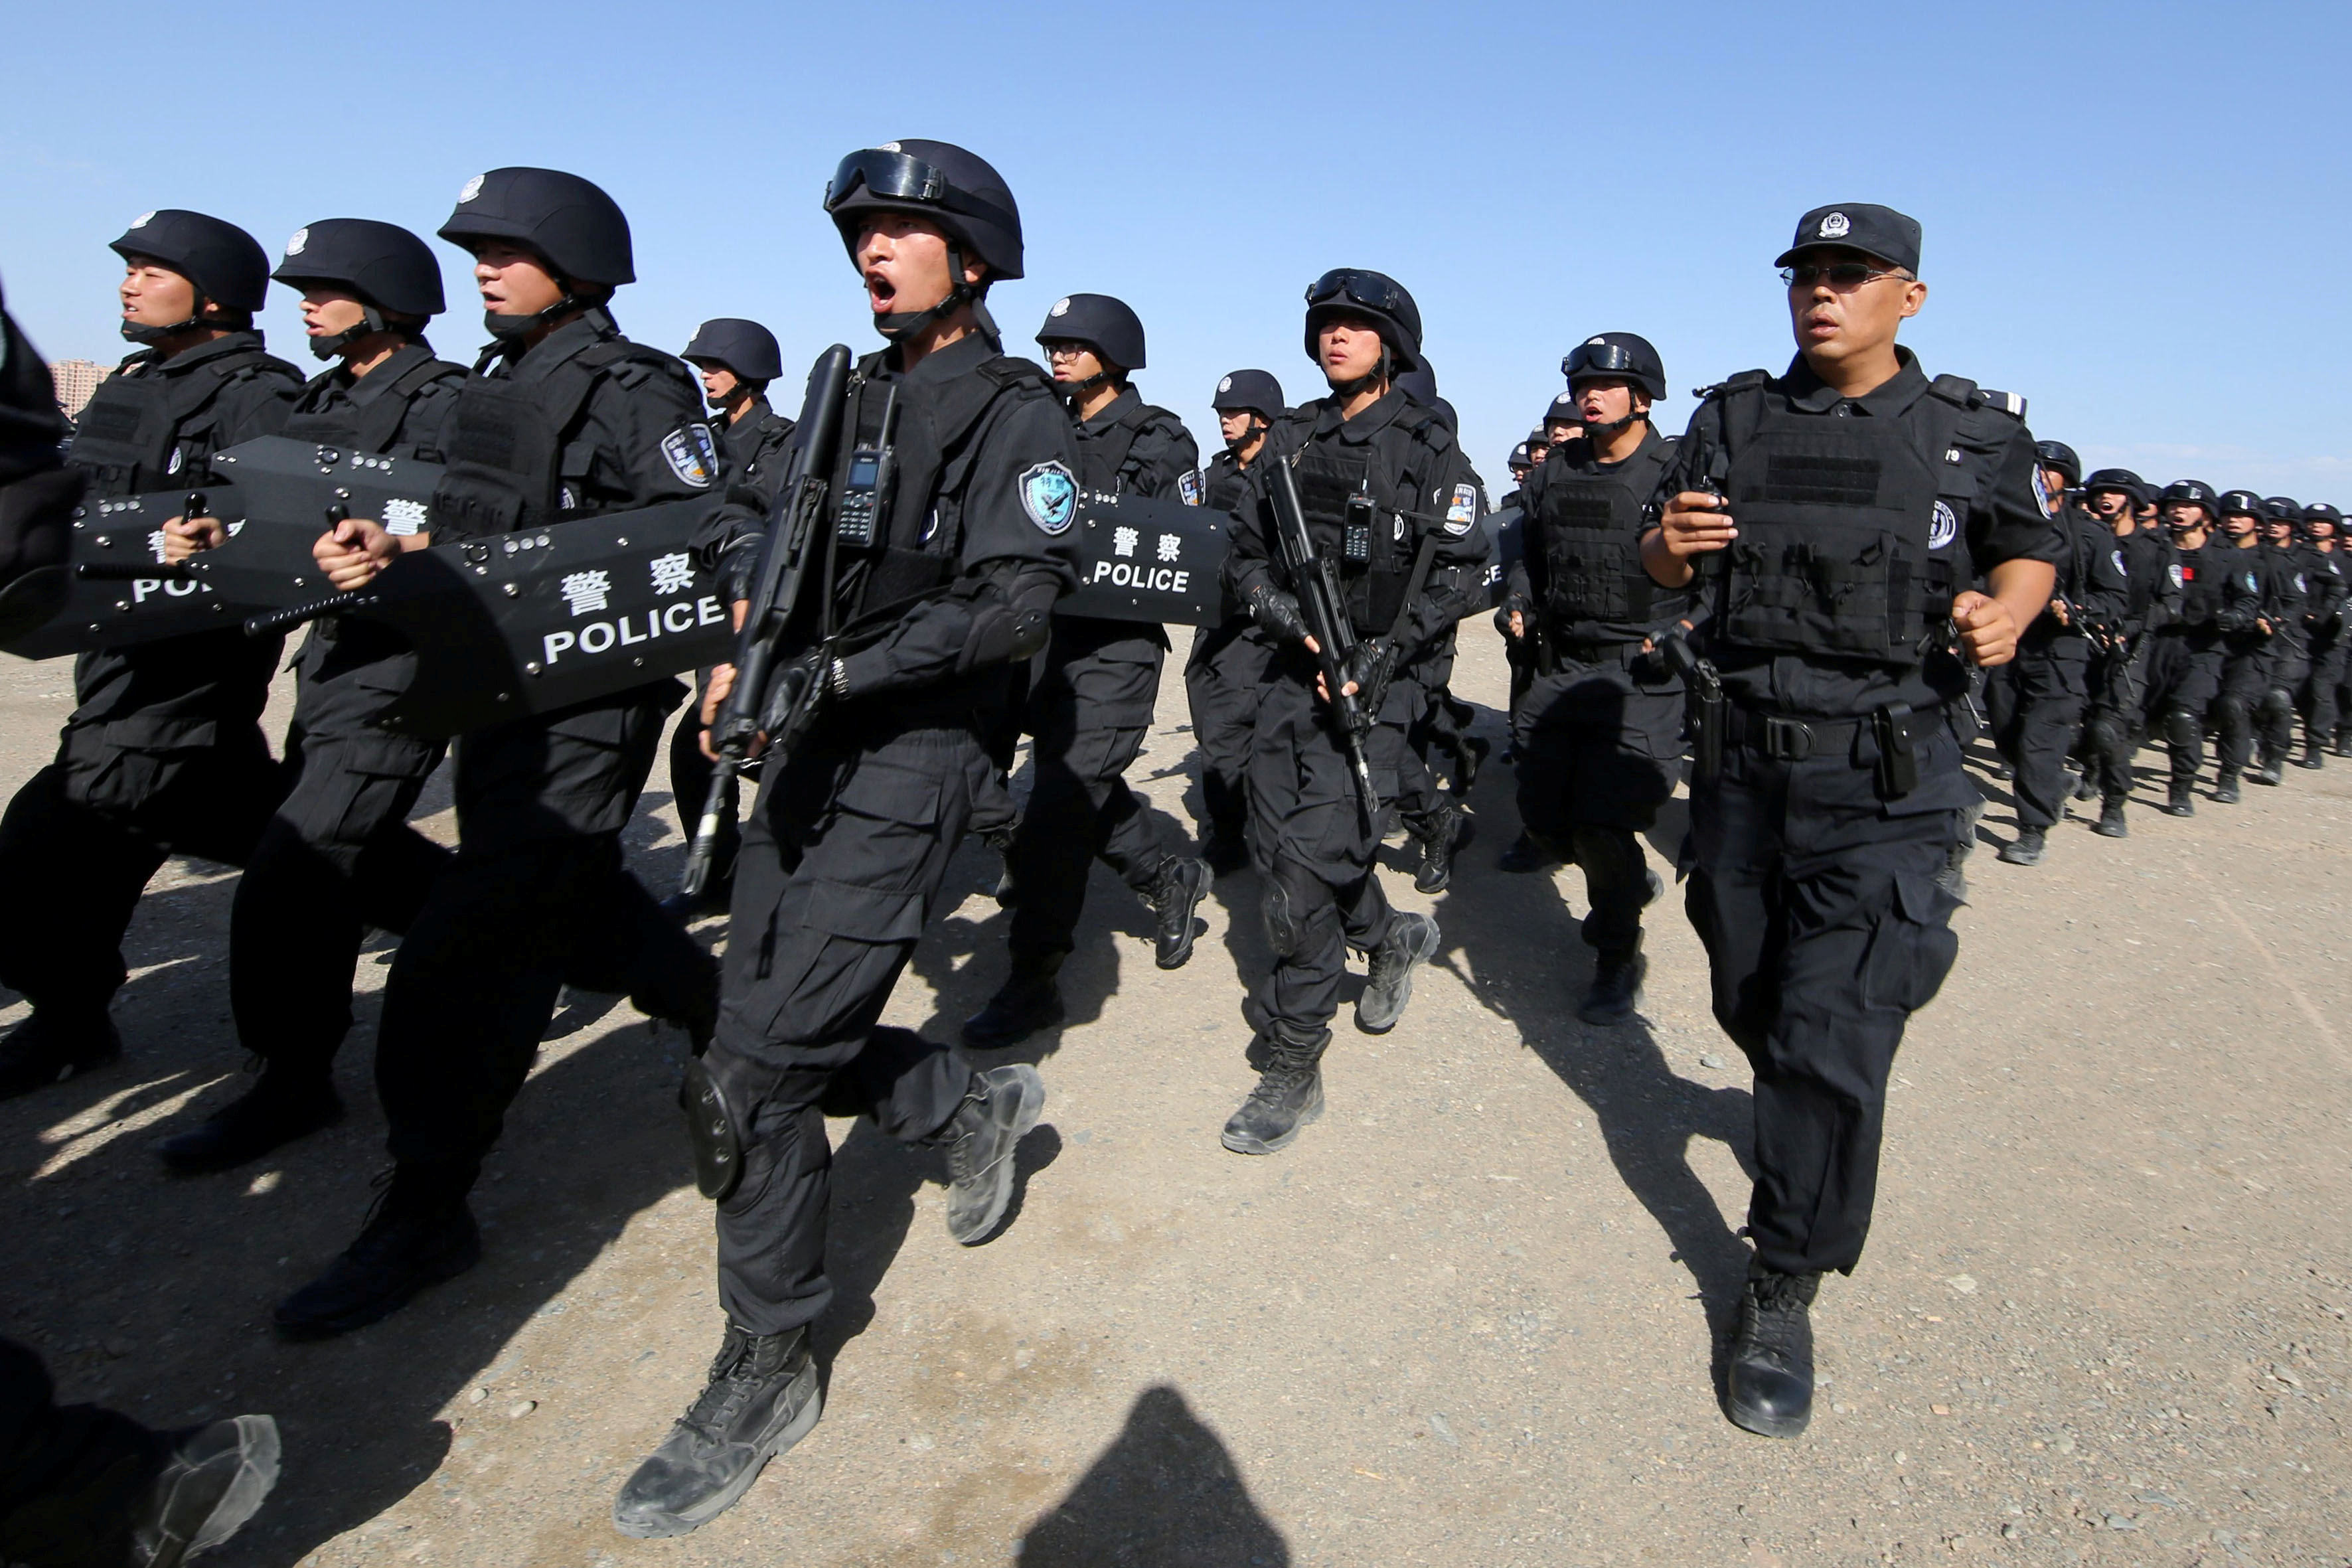 Chinese soldiers participate in an anti-terror drill in Hami, Xinjiang Uighur Autonomous Region, China, July 8, 2017.